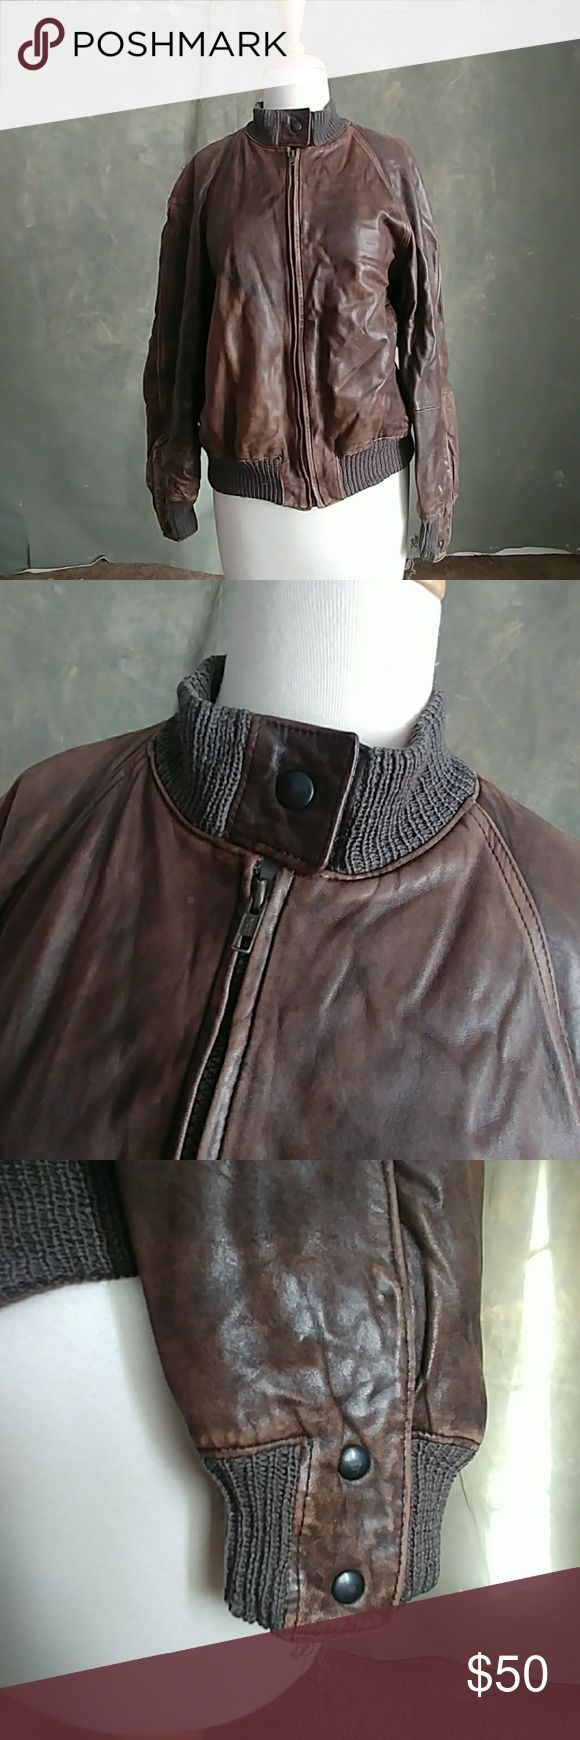 Vintage Italian Leather jacket Brown Vintage Italian Leather jacket.  Leather is in good condition but the cuffs/collar have significant wear. There are also two small (pin sized) holes in the lining. Vintage Jackets & Coats